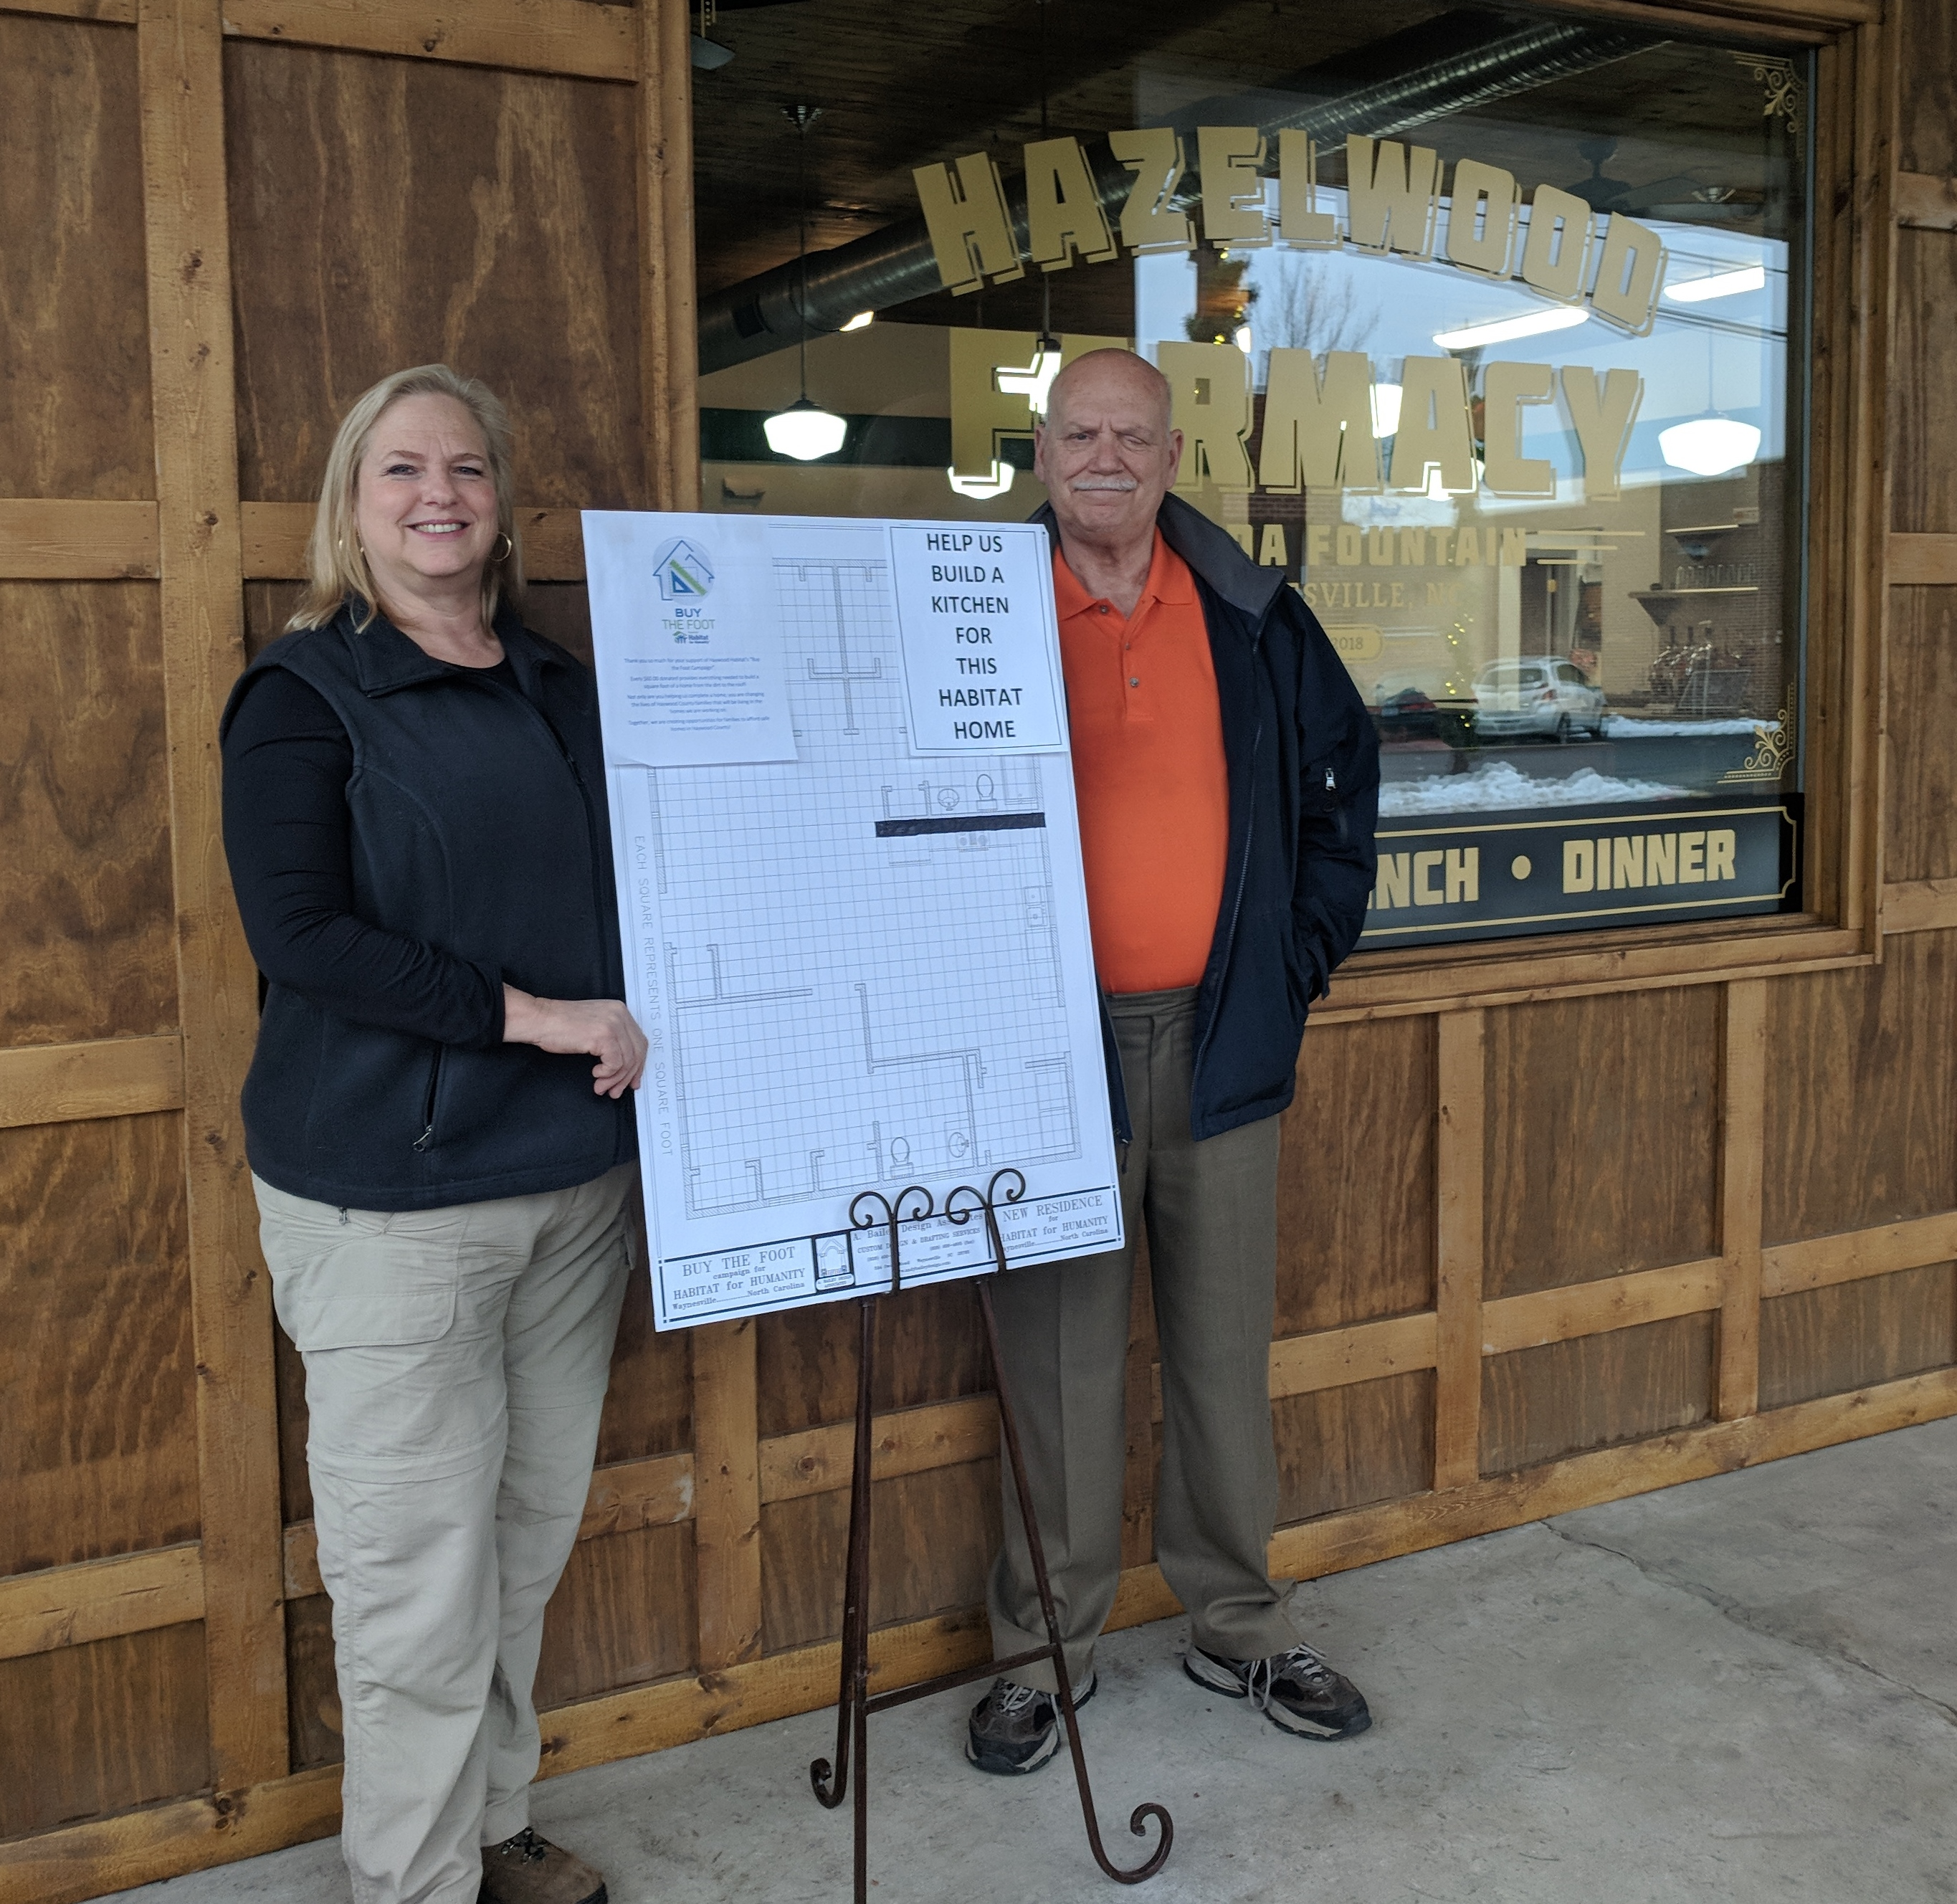 New restaurant raising funds for a home